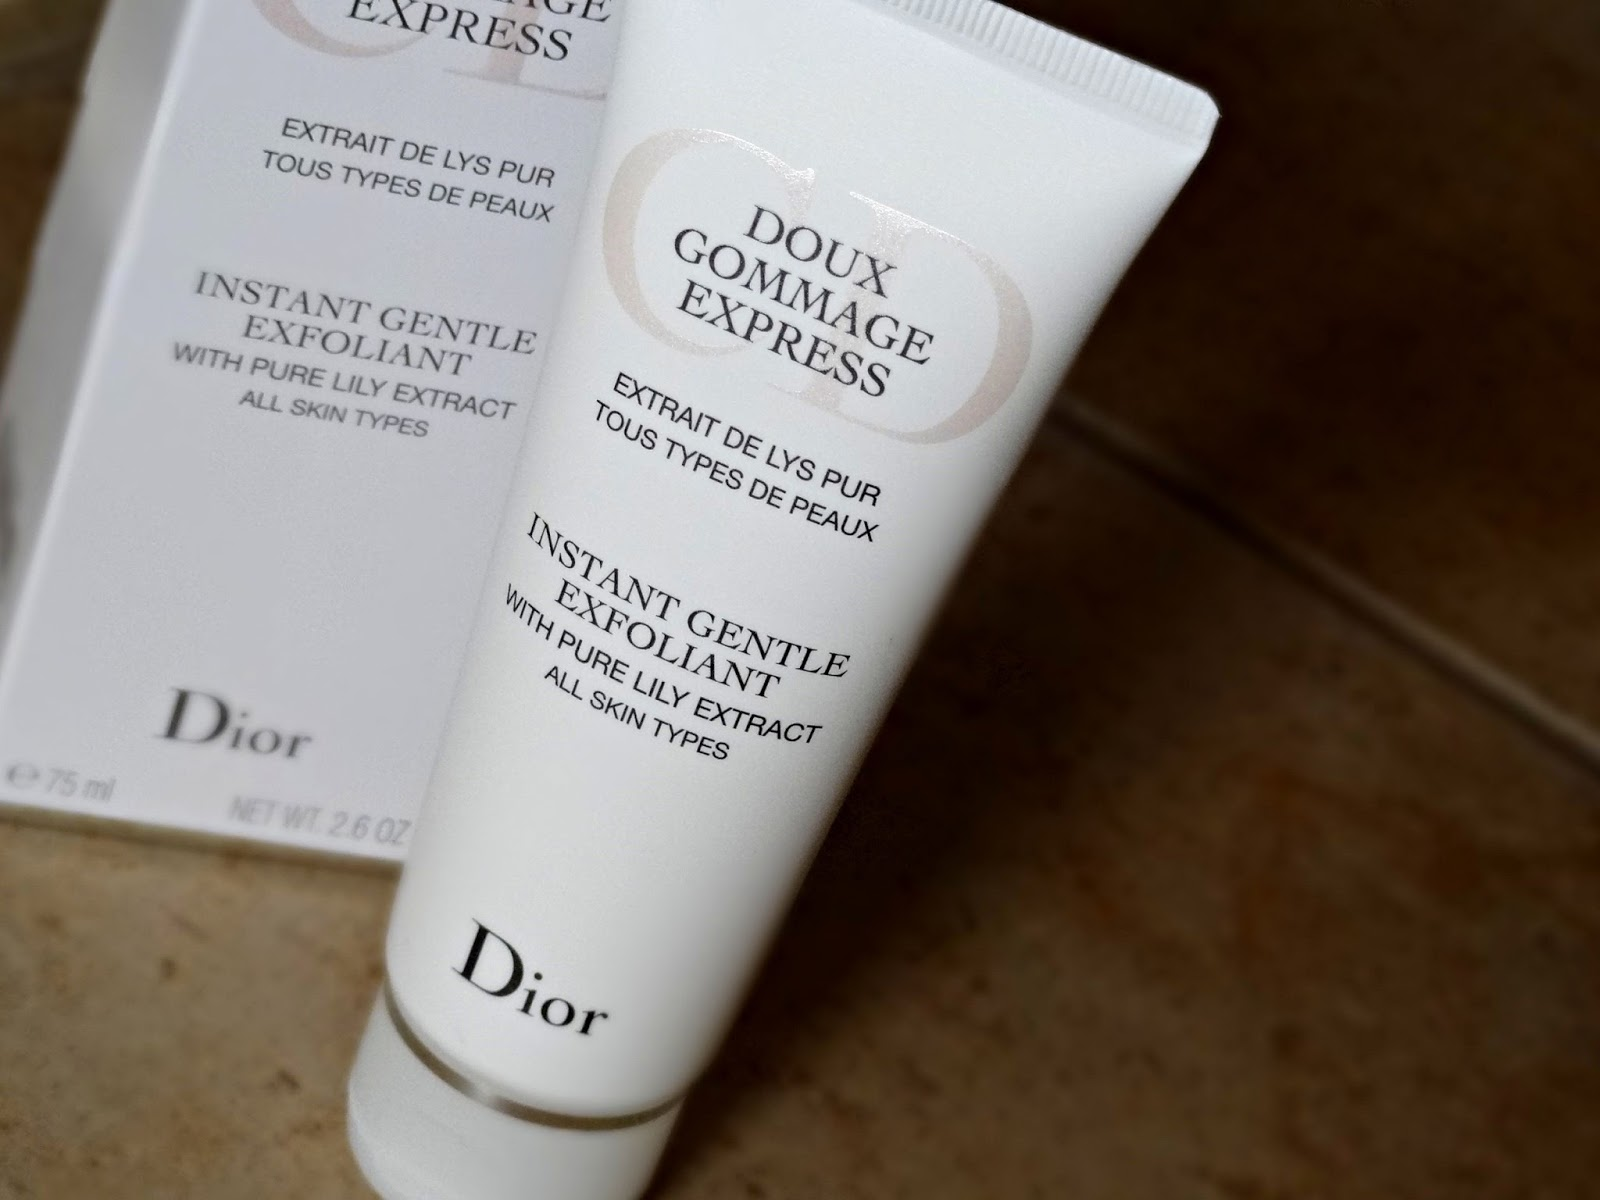 Dior's Instant Gentle Exfoliant With Pure Lily Extract